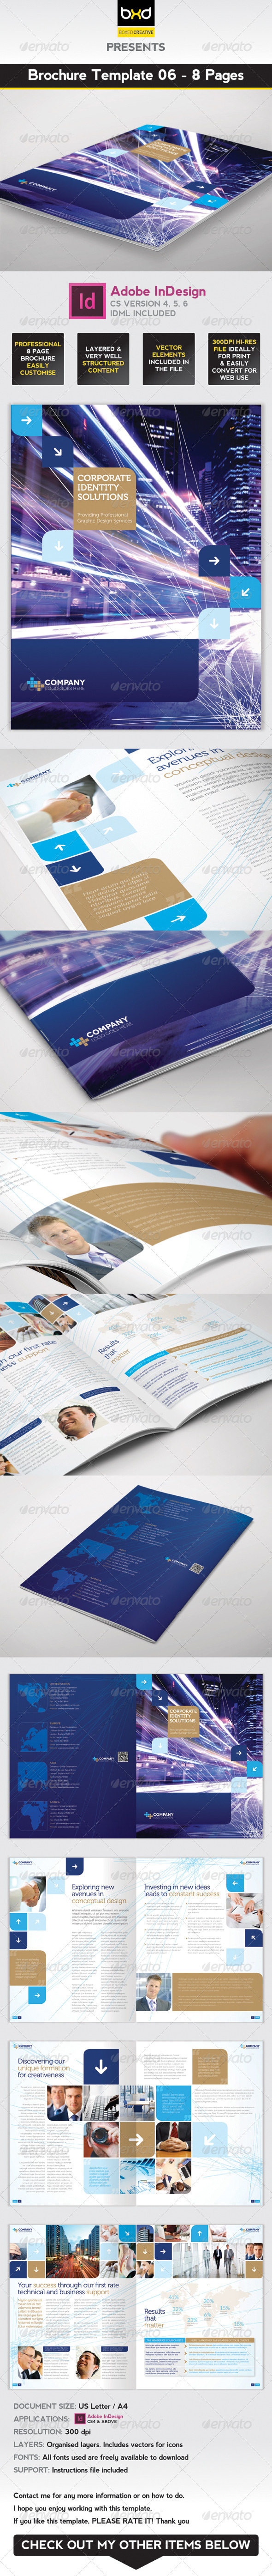 Brochure Template InDesign Page Layout By BoxedCreative - 8 page brochure template